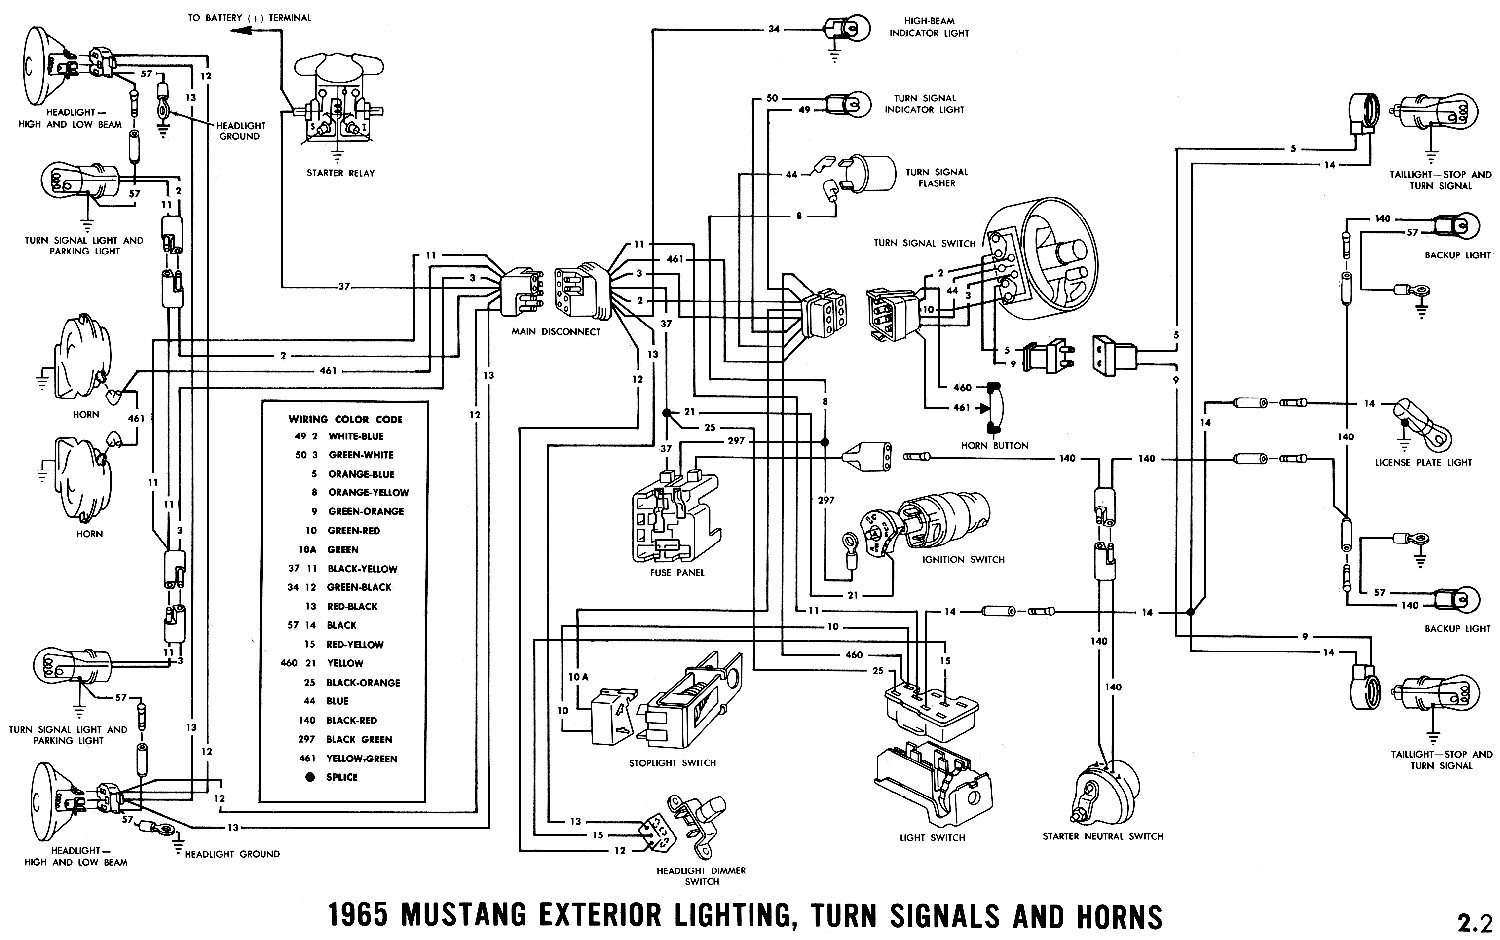 Ford Expedition 5 4 Engine Diagram Cooling System Wire Data Schema 1999 1965 Mustang Wiring Diagrams Average Joe Restoration 2002 54l